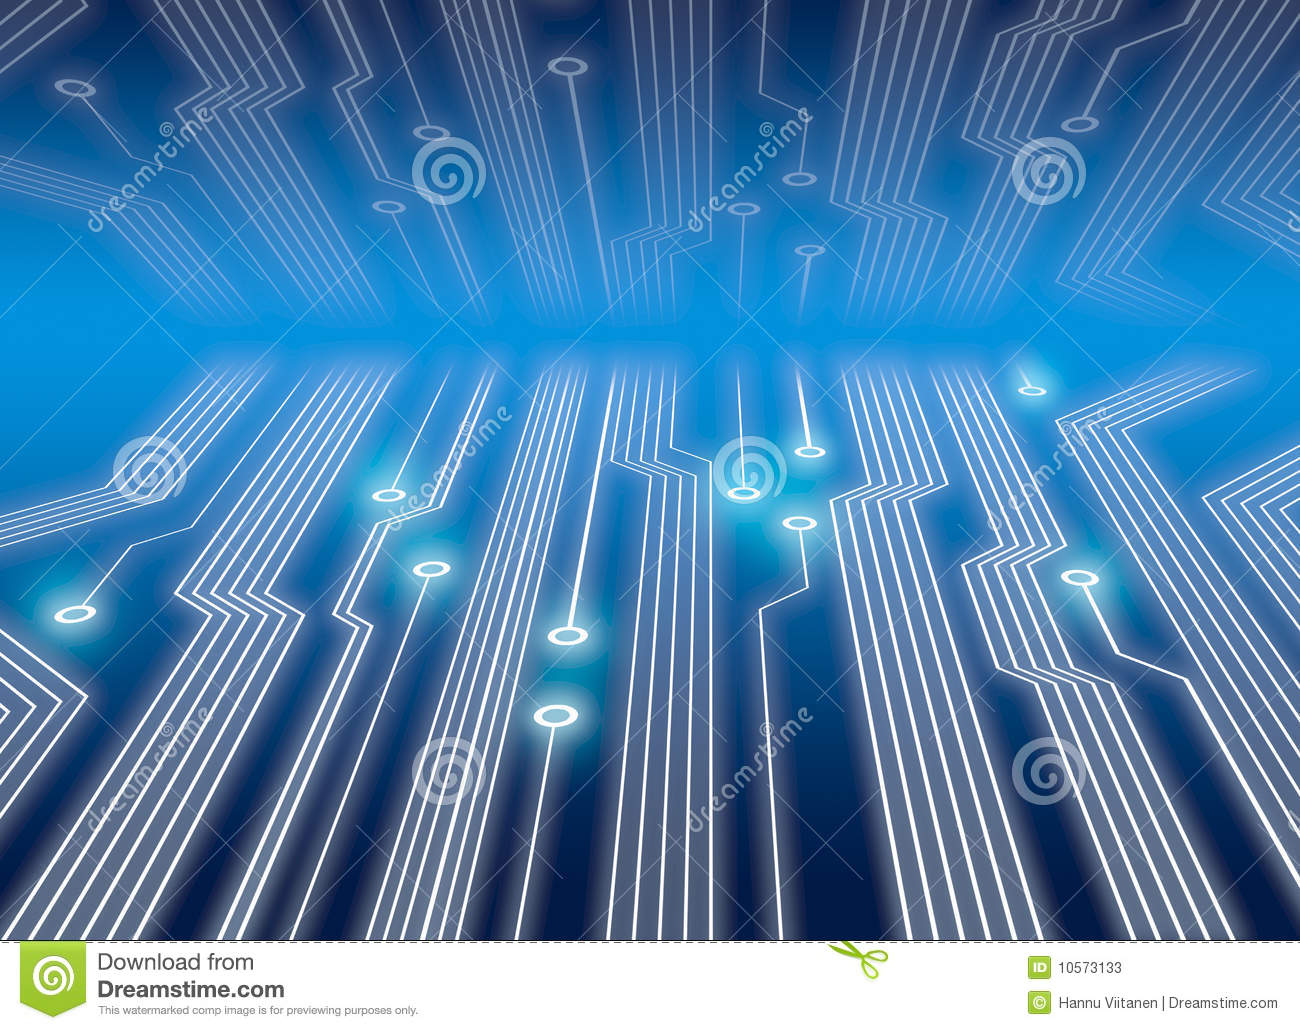 Electronic Circuits In Blue Stock Illustration - Illustration of ...